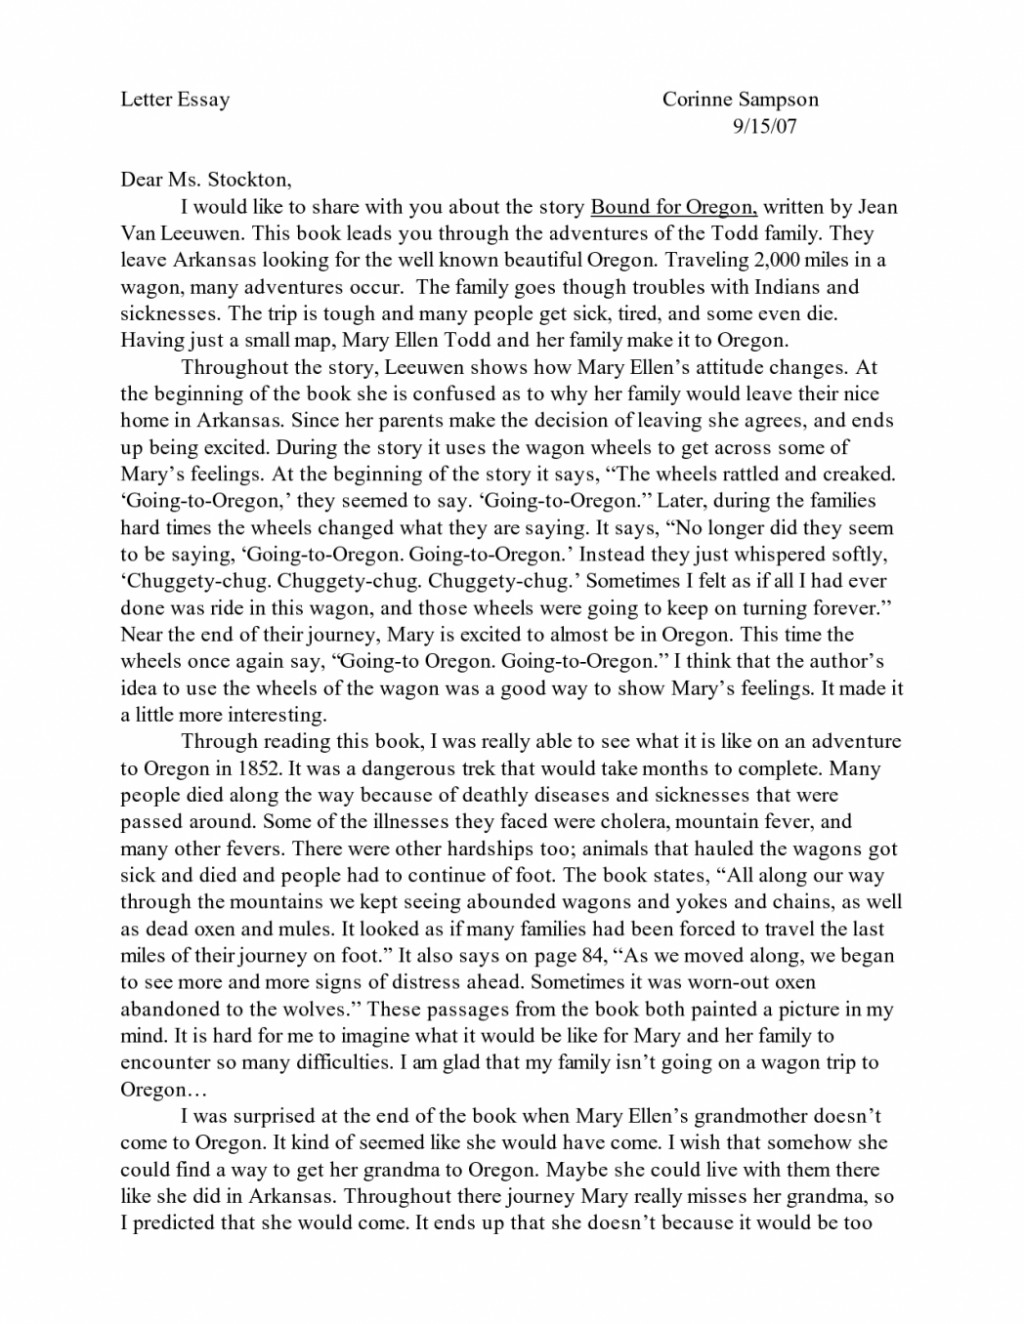 009 Sample Essay College Scholarships How To Write Winning Scholarship Format About Yourself Best Way 1048x1356 Topics List Template Tips Large